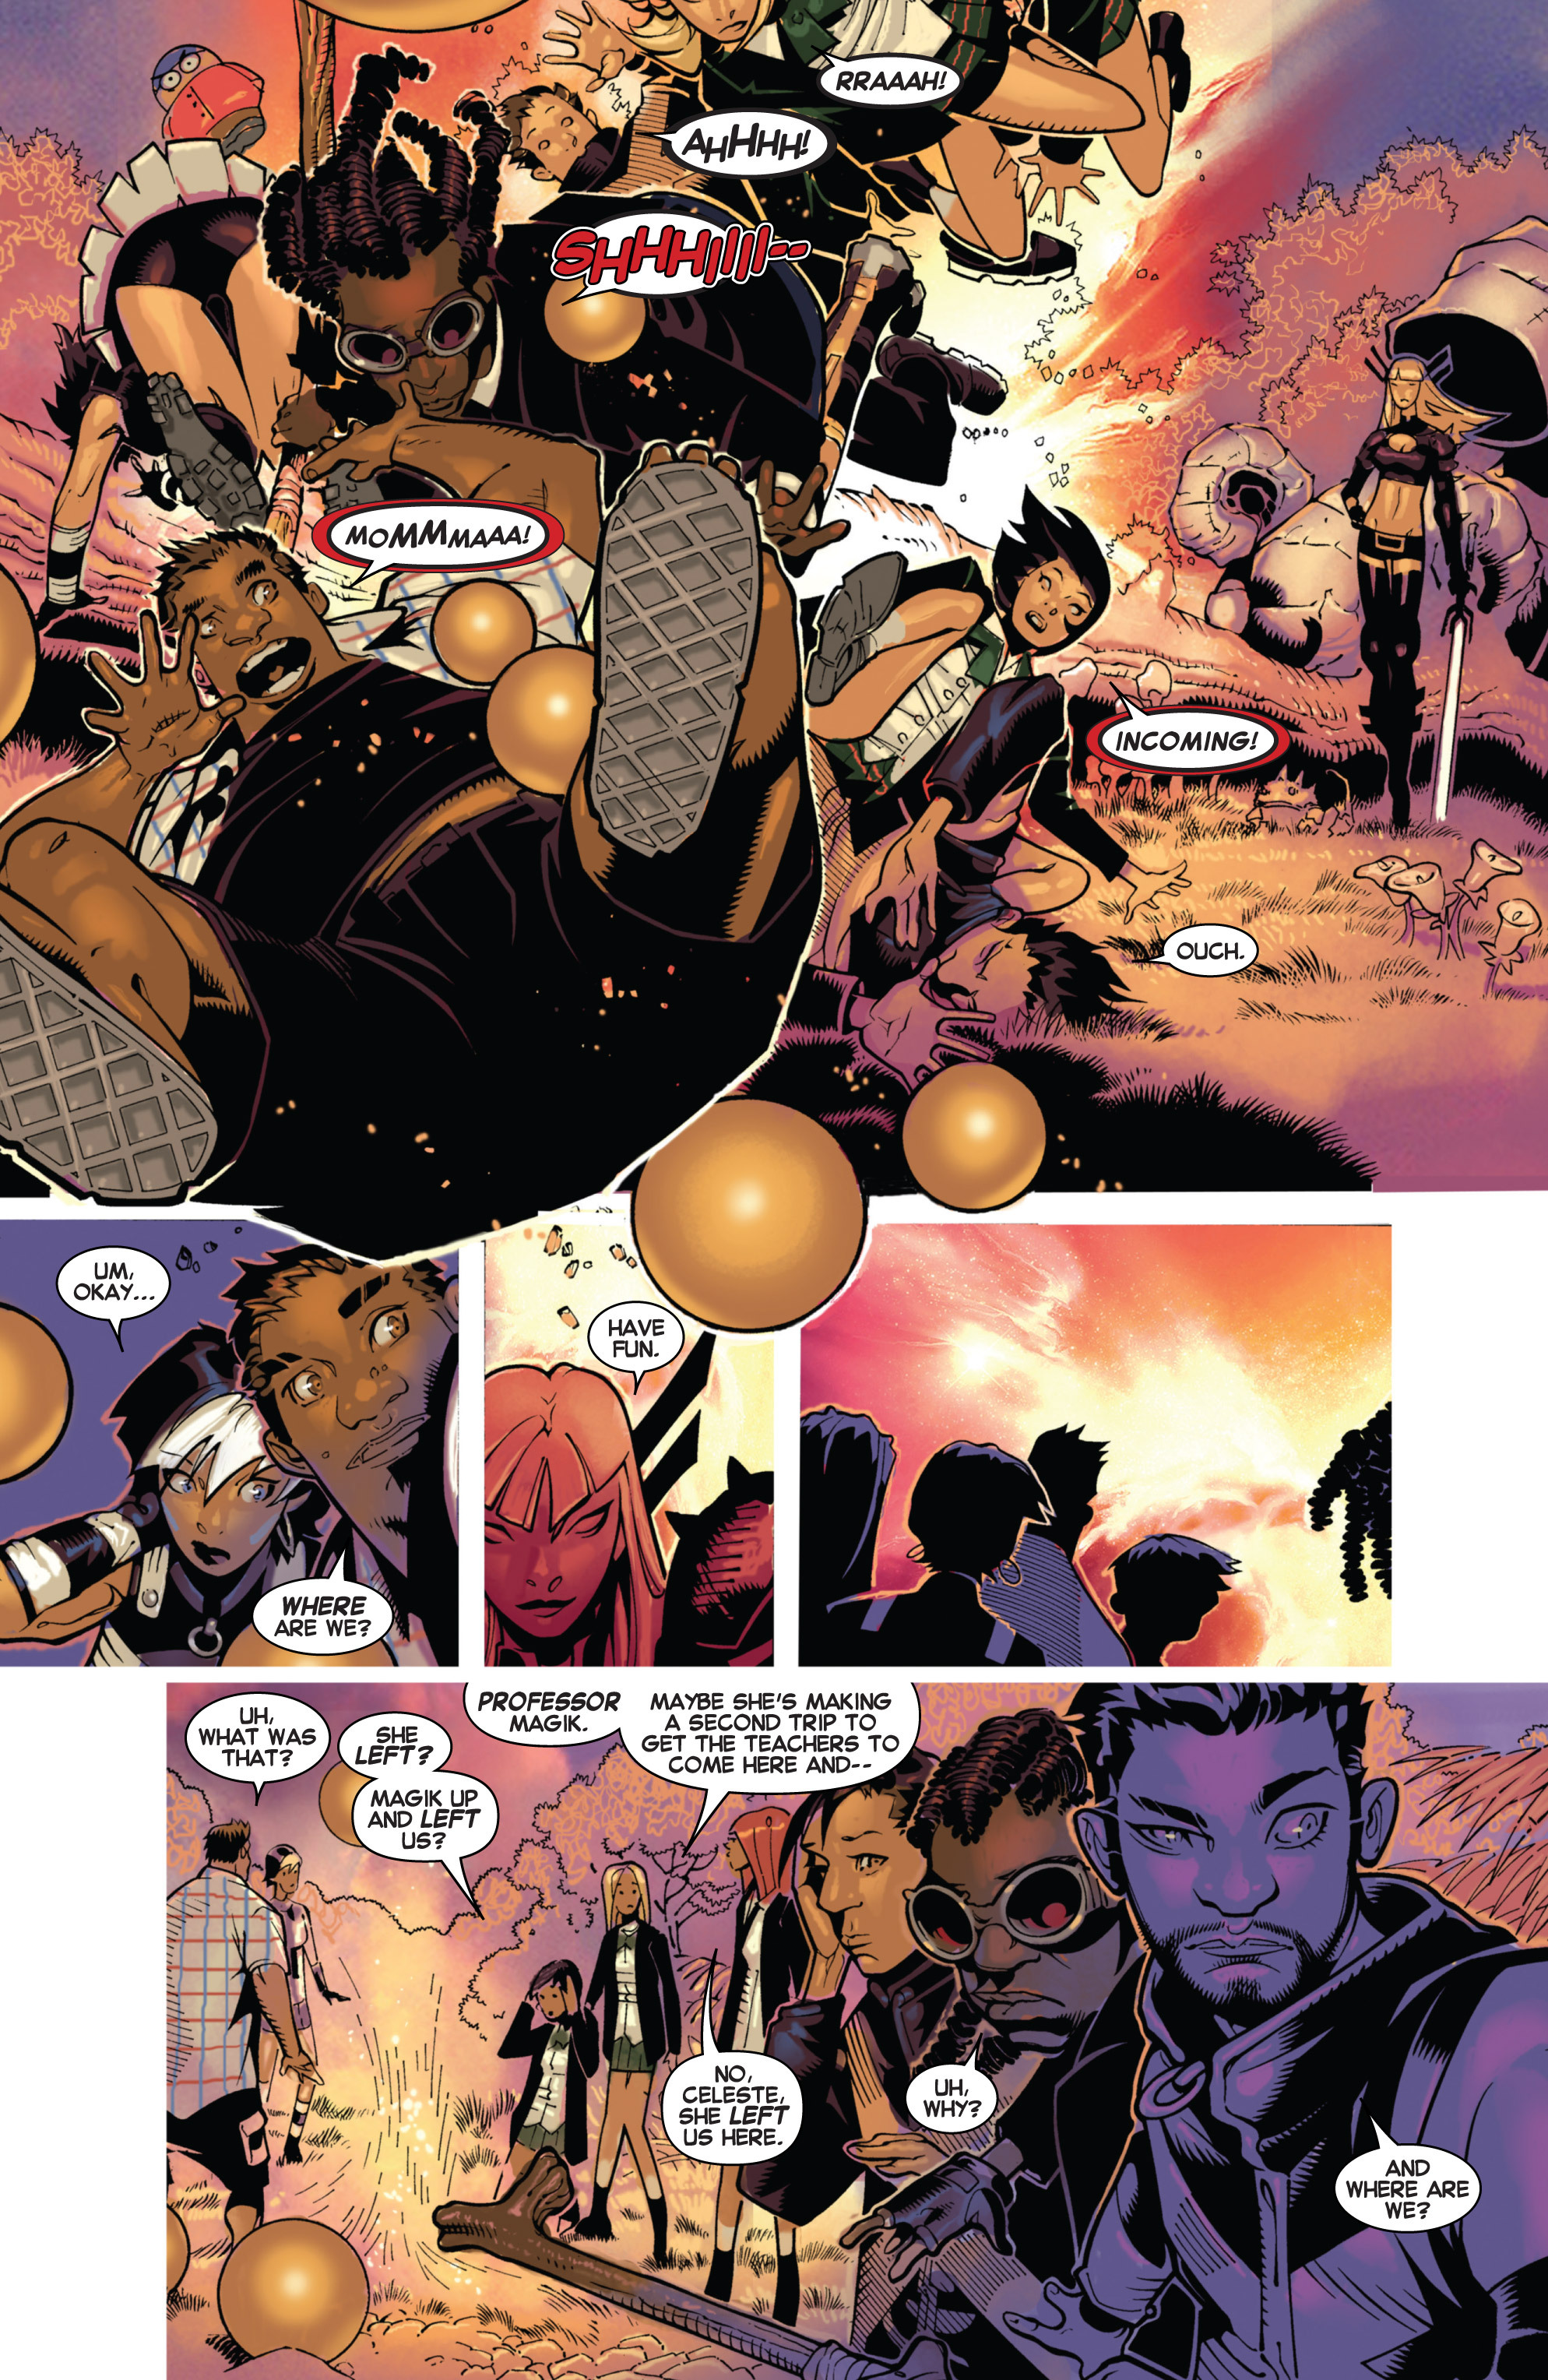 Read online Uncanny X-Men (2013) comic -  Issue # _TPB 3 - The Good, The Bad, The Inhuman - 67